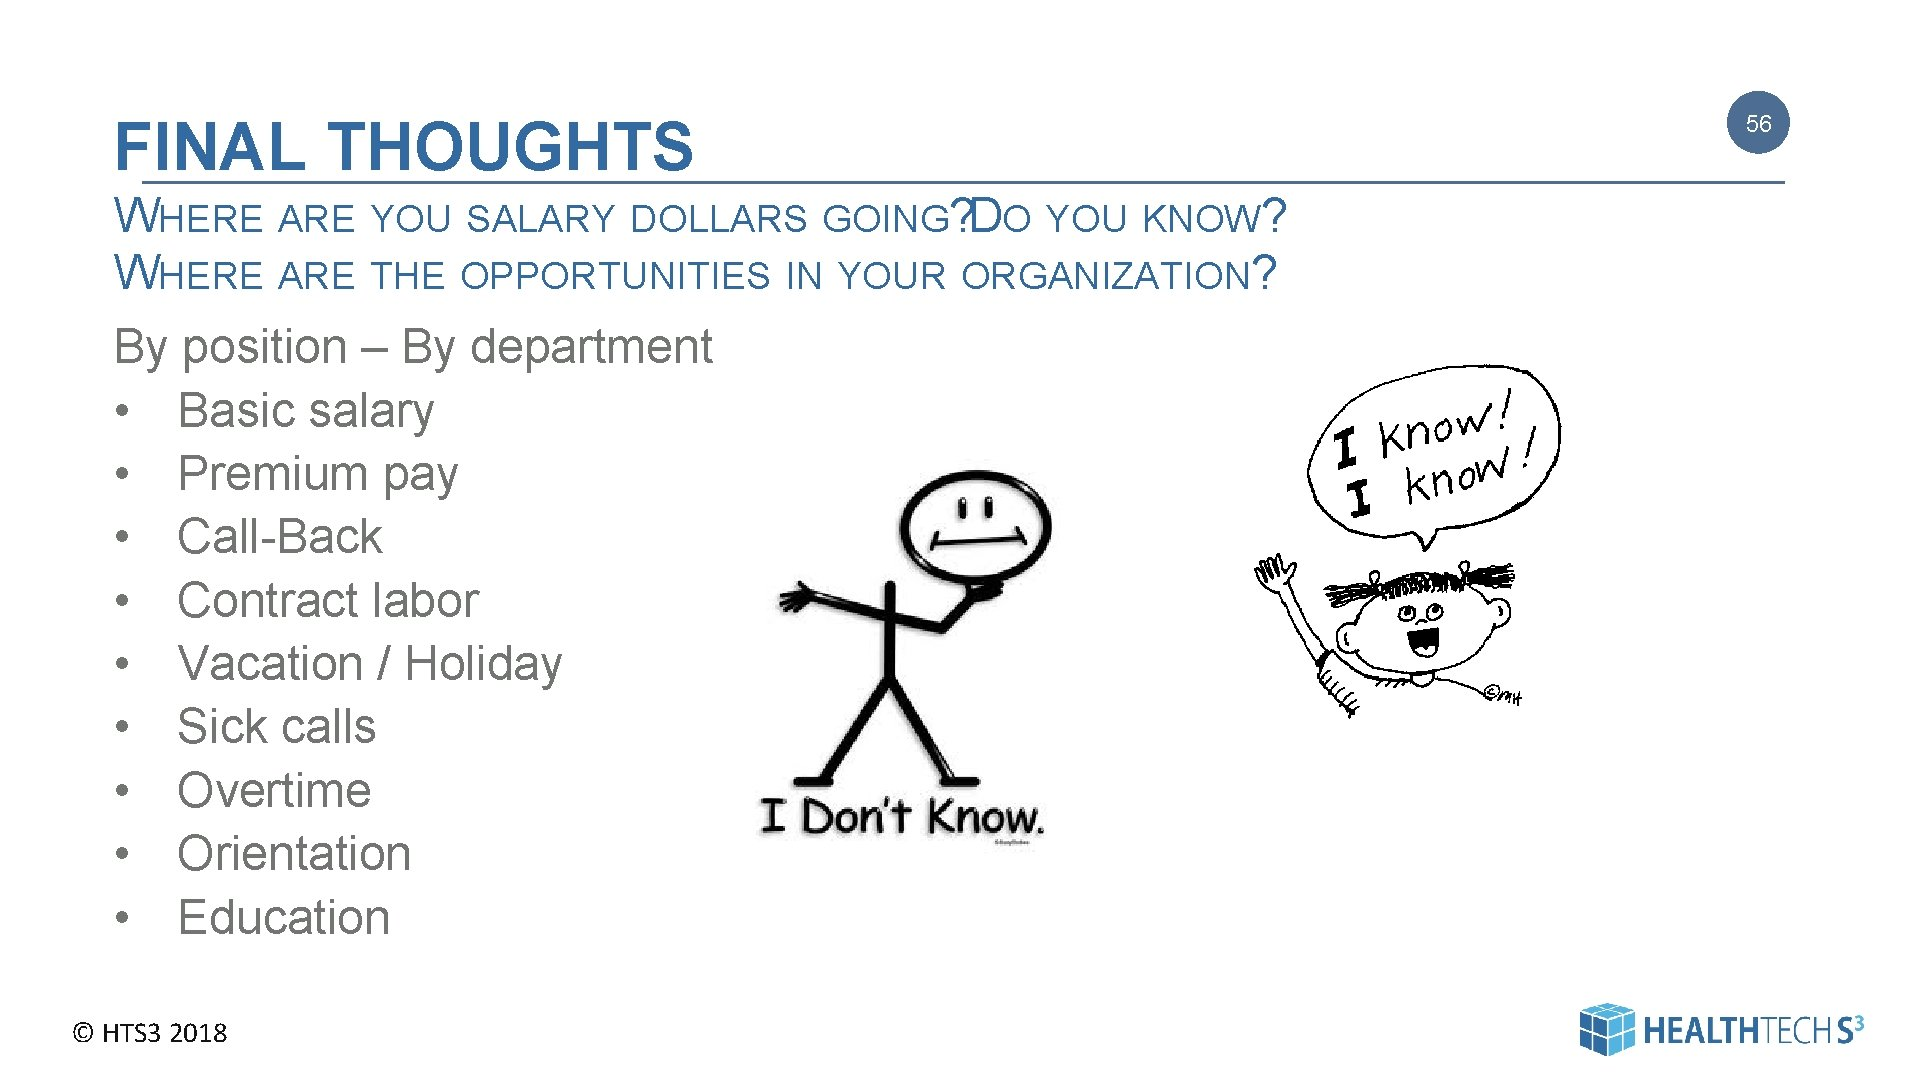 FINAL THOUGHTS WHERE ARE YOU SALARY DOLLARS GOING? DO YOU KNOW? WHERE ARE THE